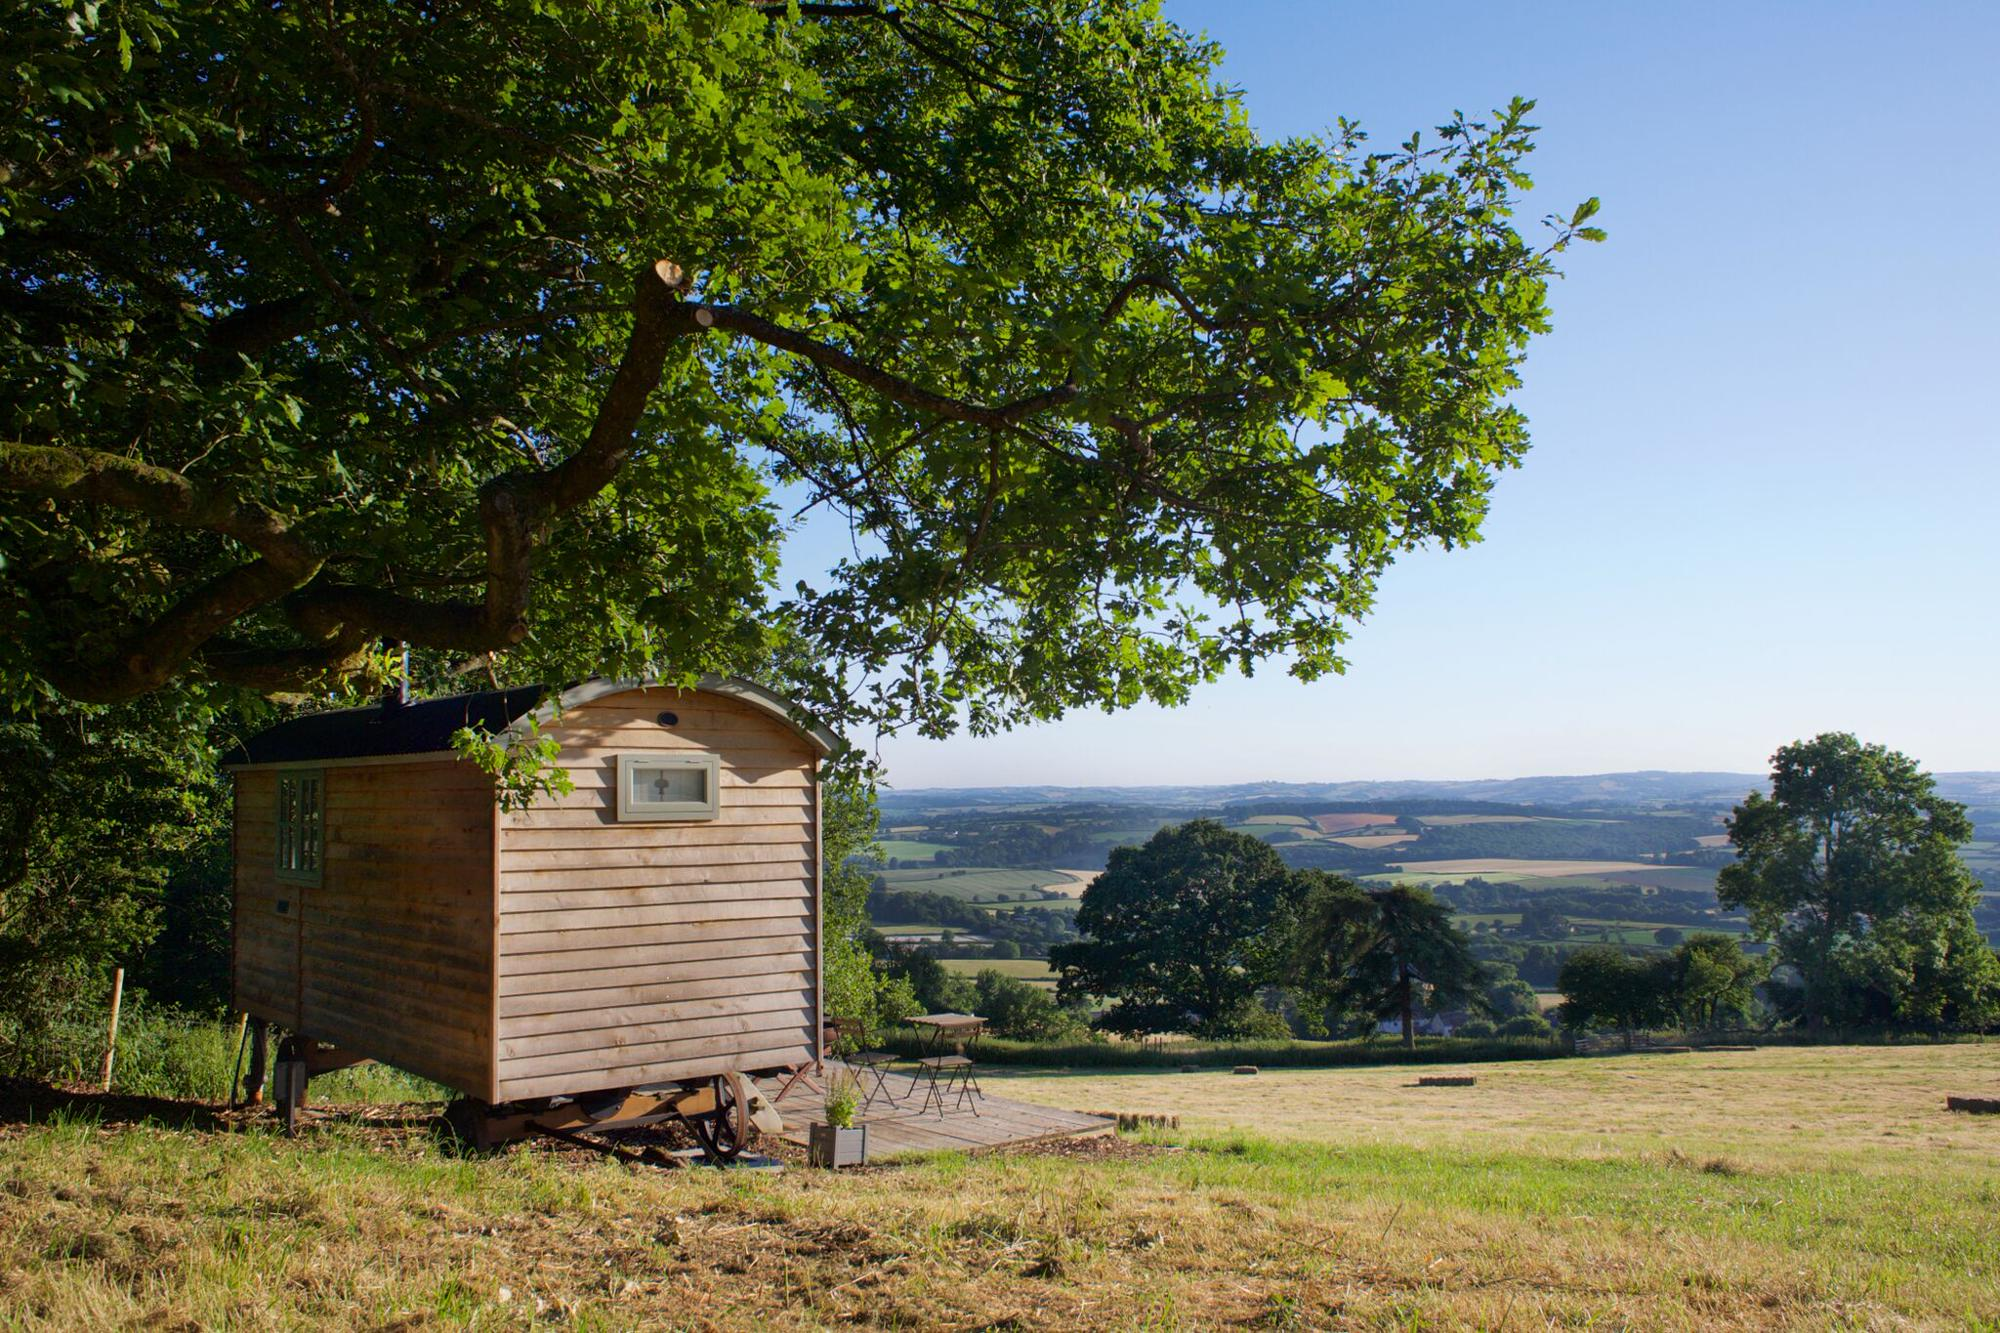 Glamping in Bridgwater holidays at Cool Camping